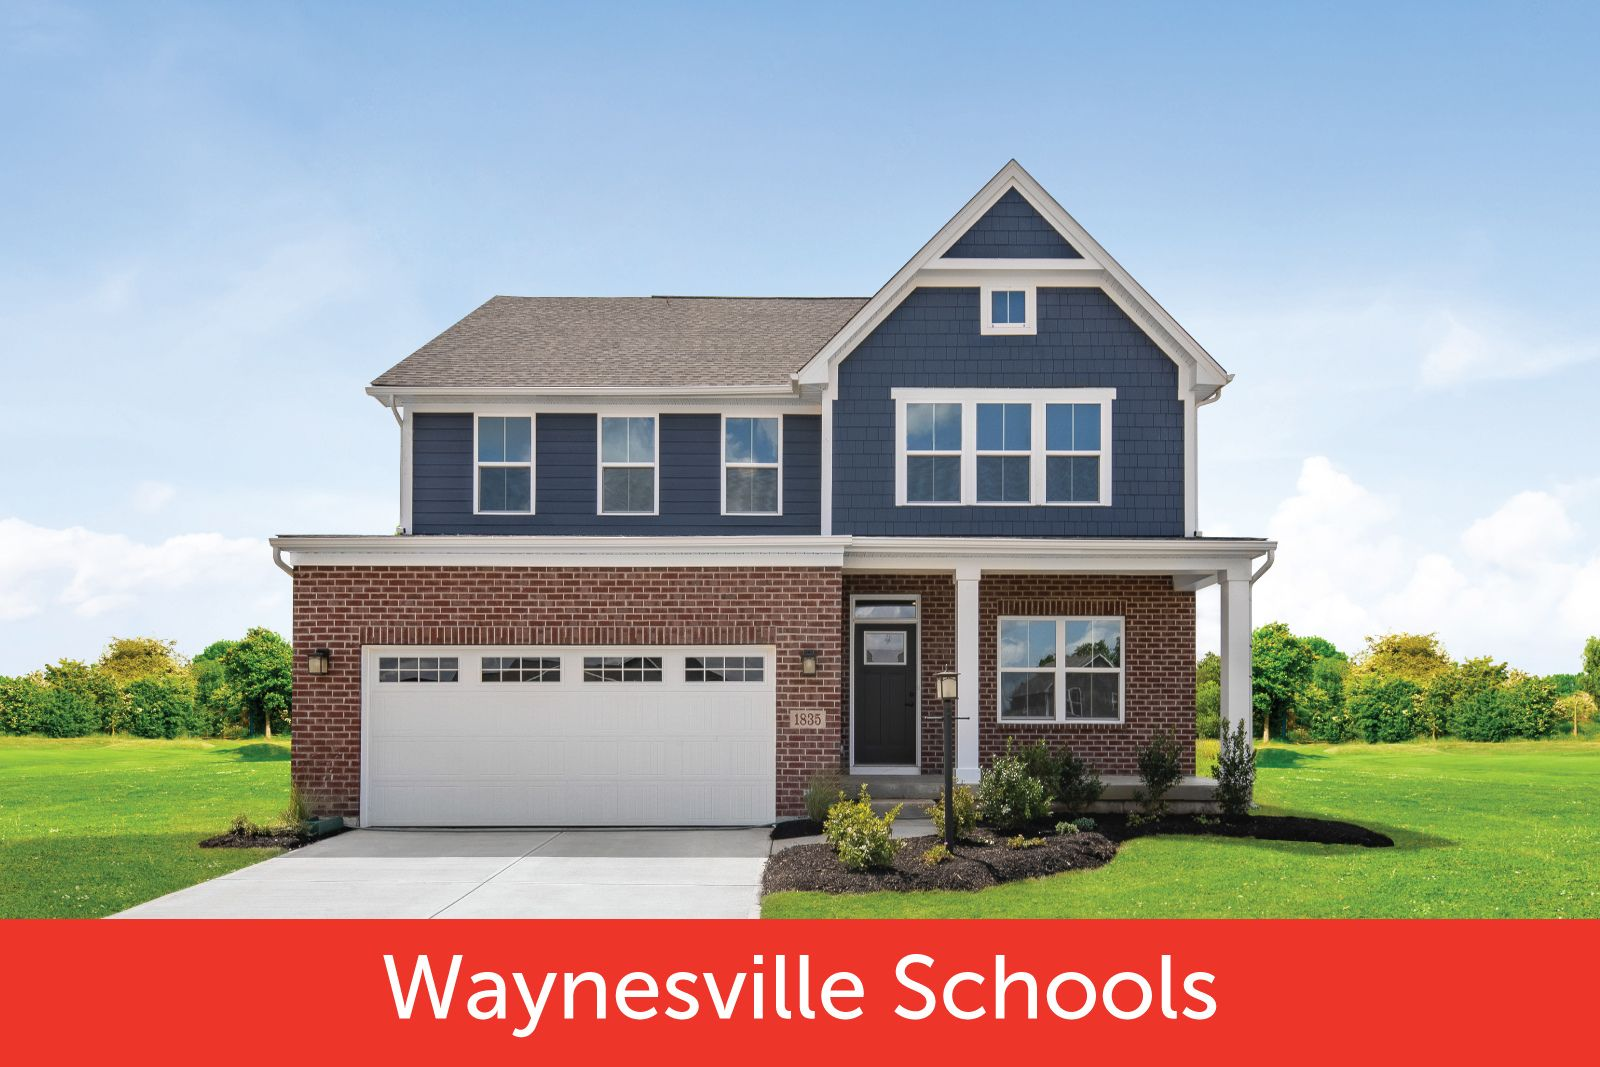 New 2-story and ranch homes in Waynesville Schools at The Legacy at Winding Creek:Community pool & clubhouse, 1/3-acre homesites with low taxes! Minutes to Austin Landing. From the $290s.Click here to schedule your visit today!